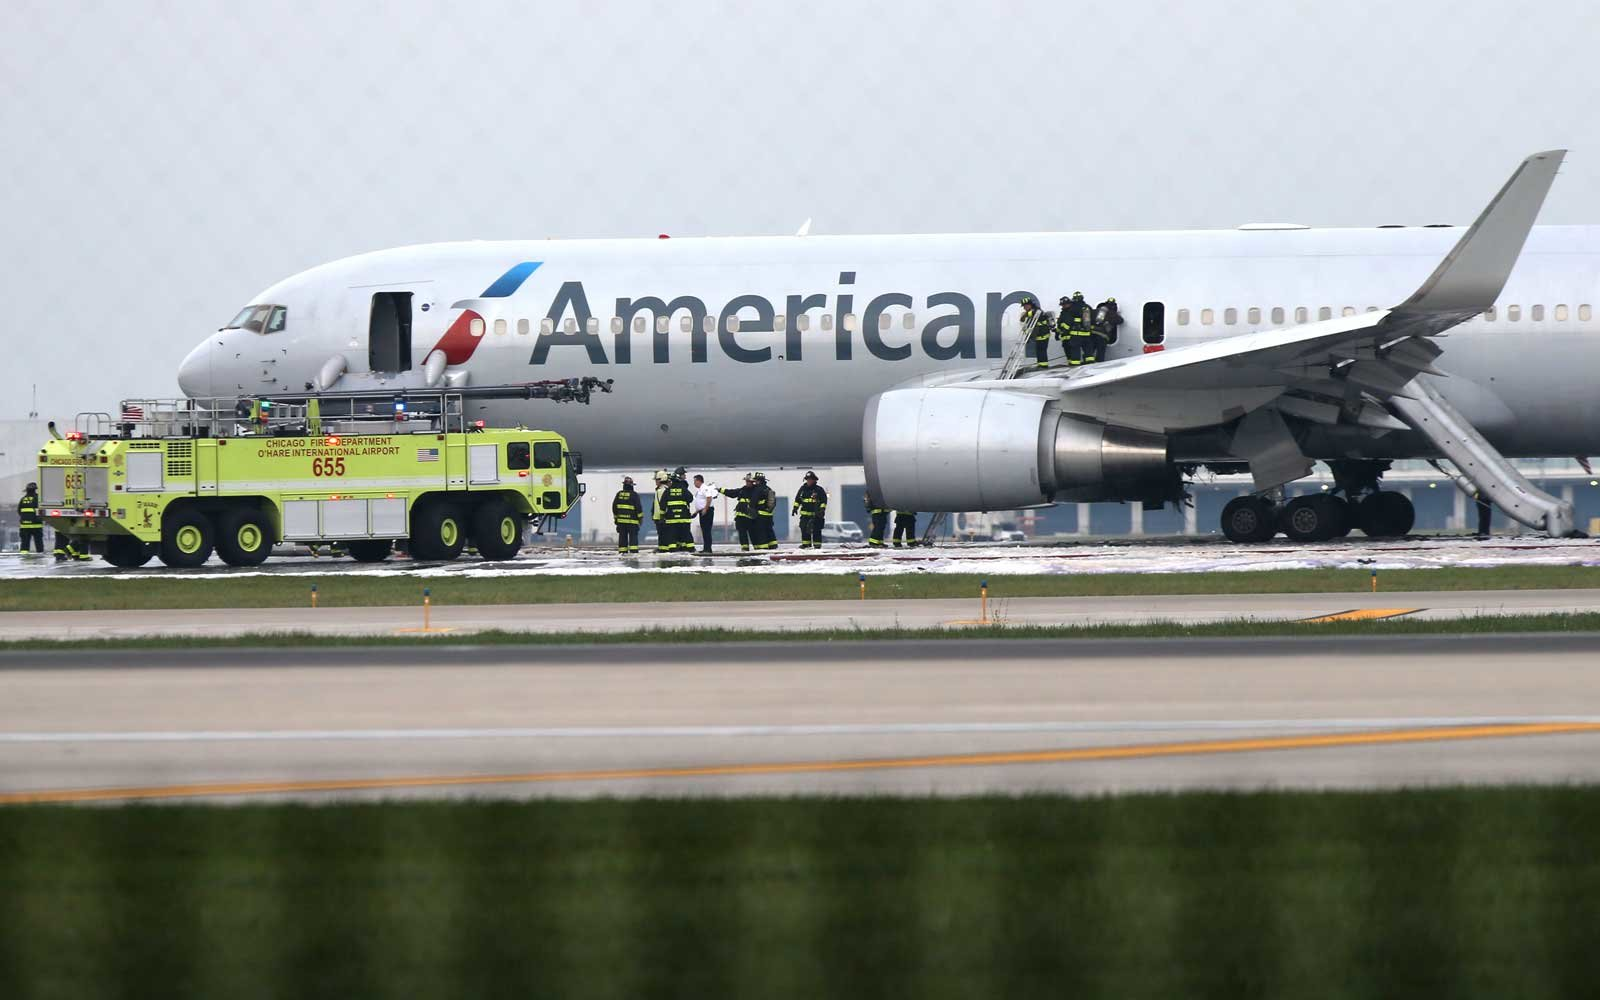 What Went Wrong When An American Airlines Plane Caught